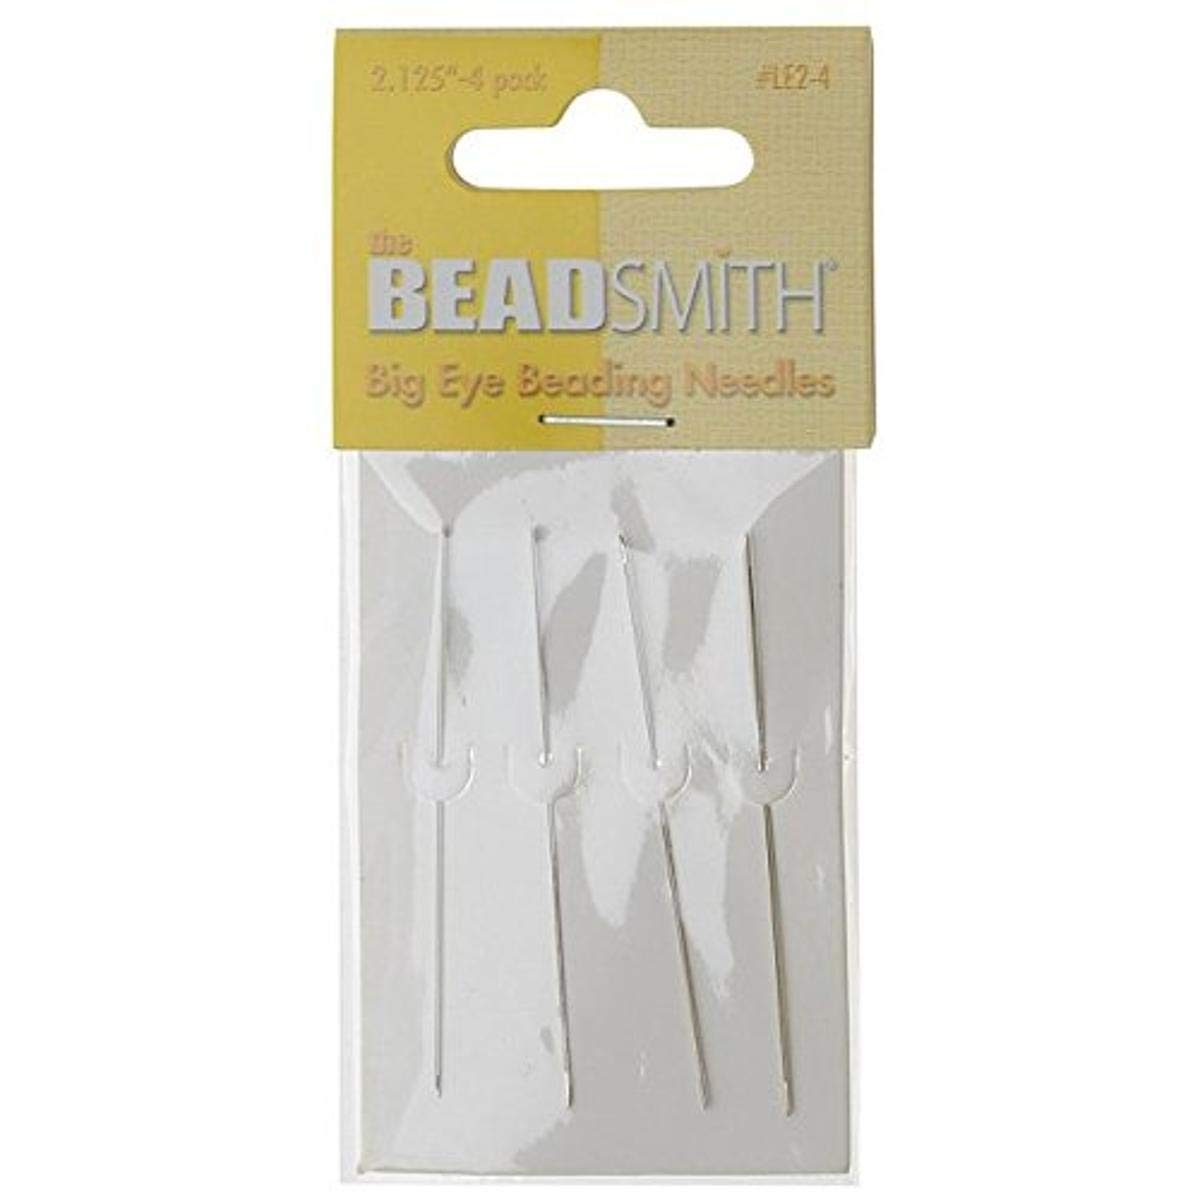 Beadsmith XTL-3166 Big Eye Beading Long Needles (4 Pack), 2.125""